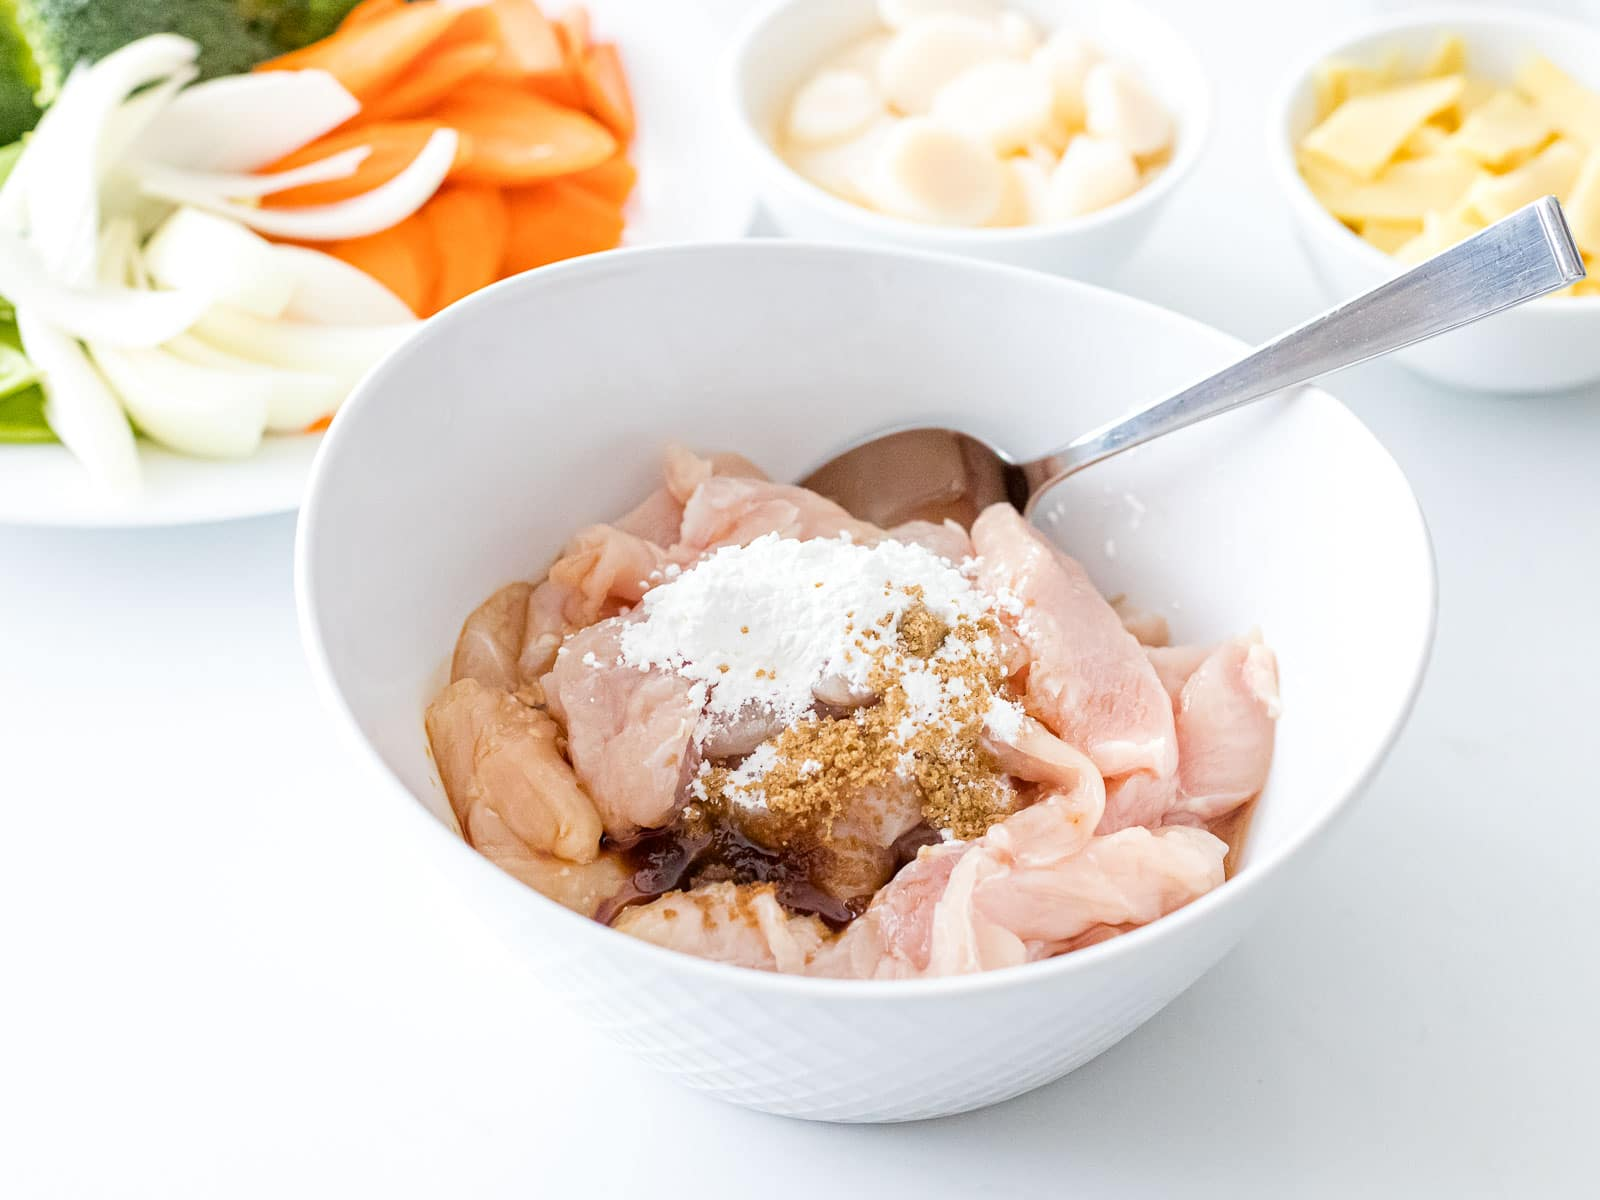 chicken breast marinating in a white bowl next to vegetables